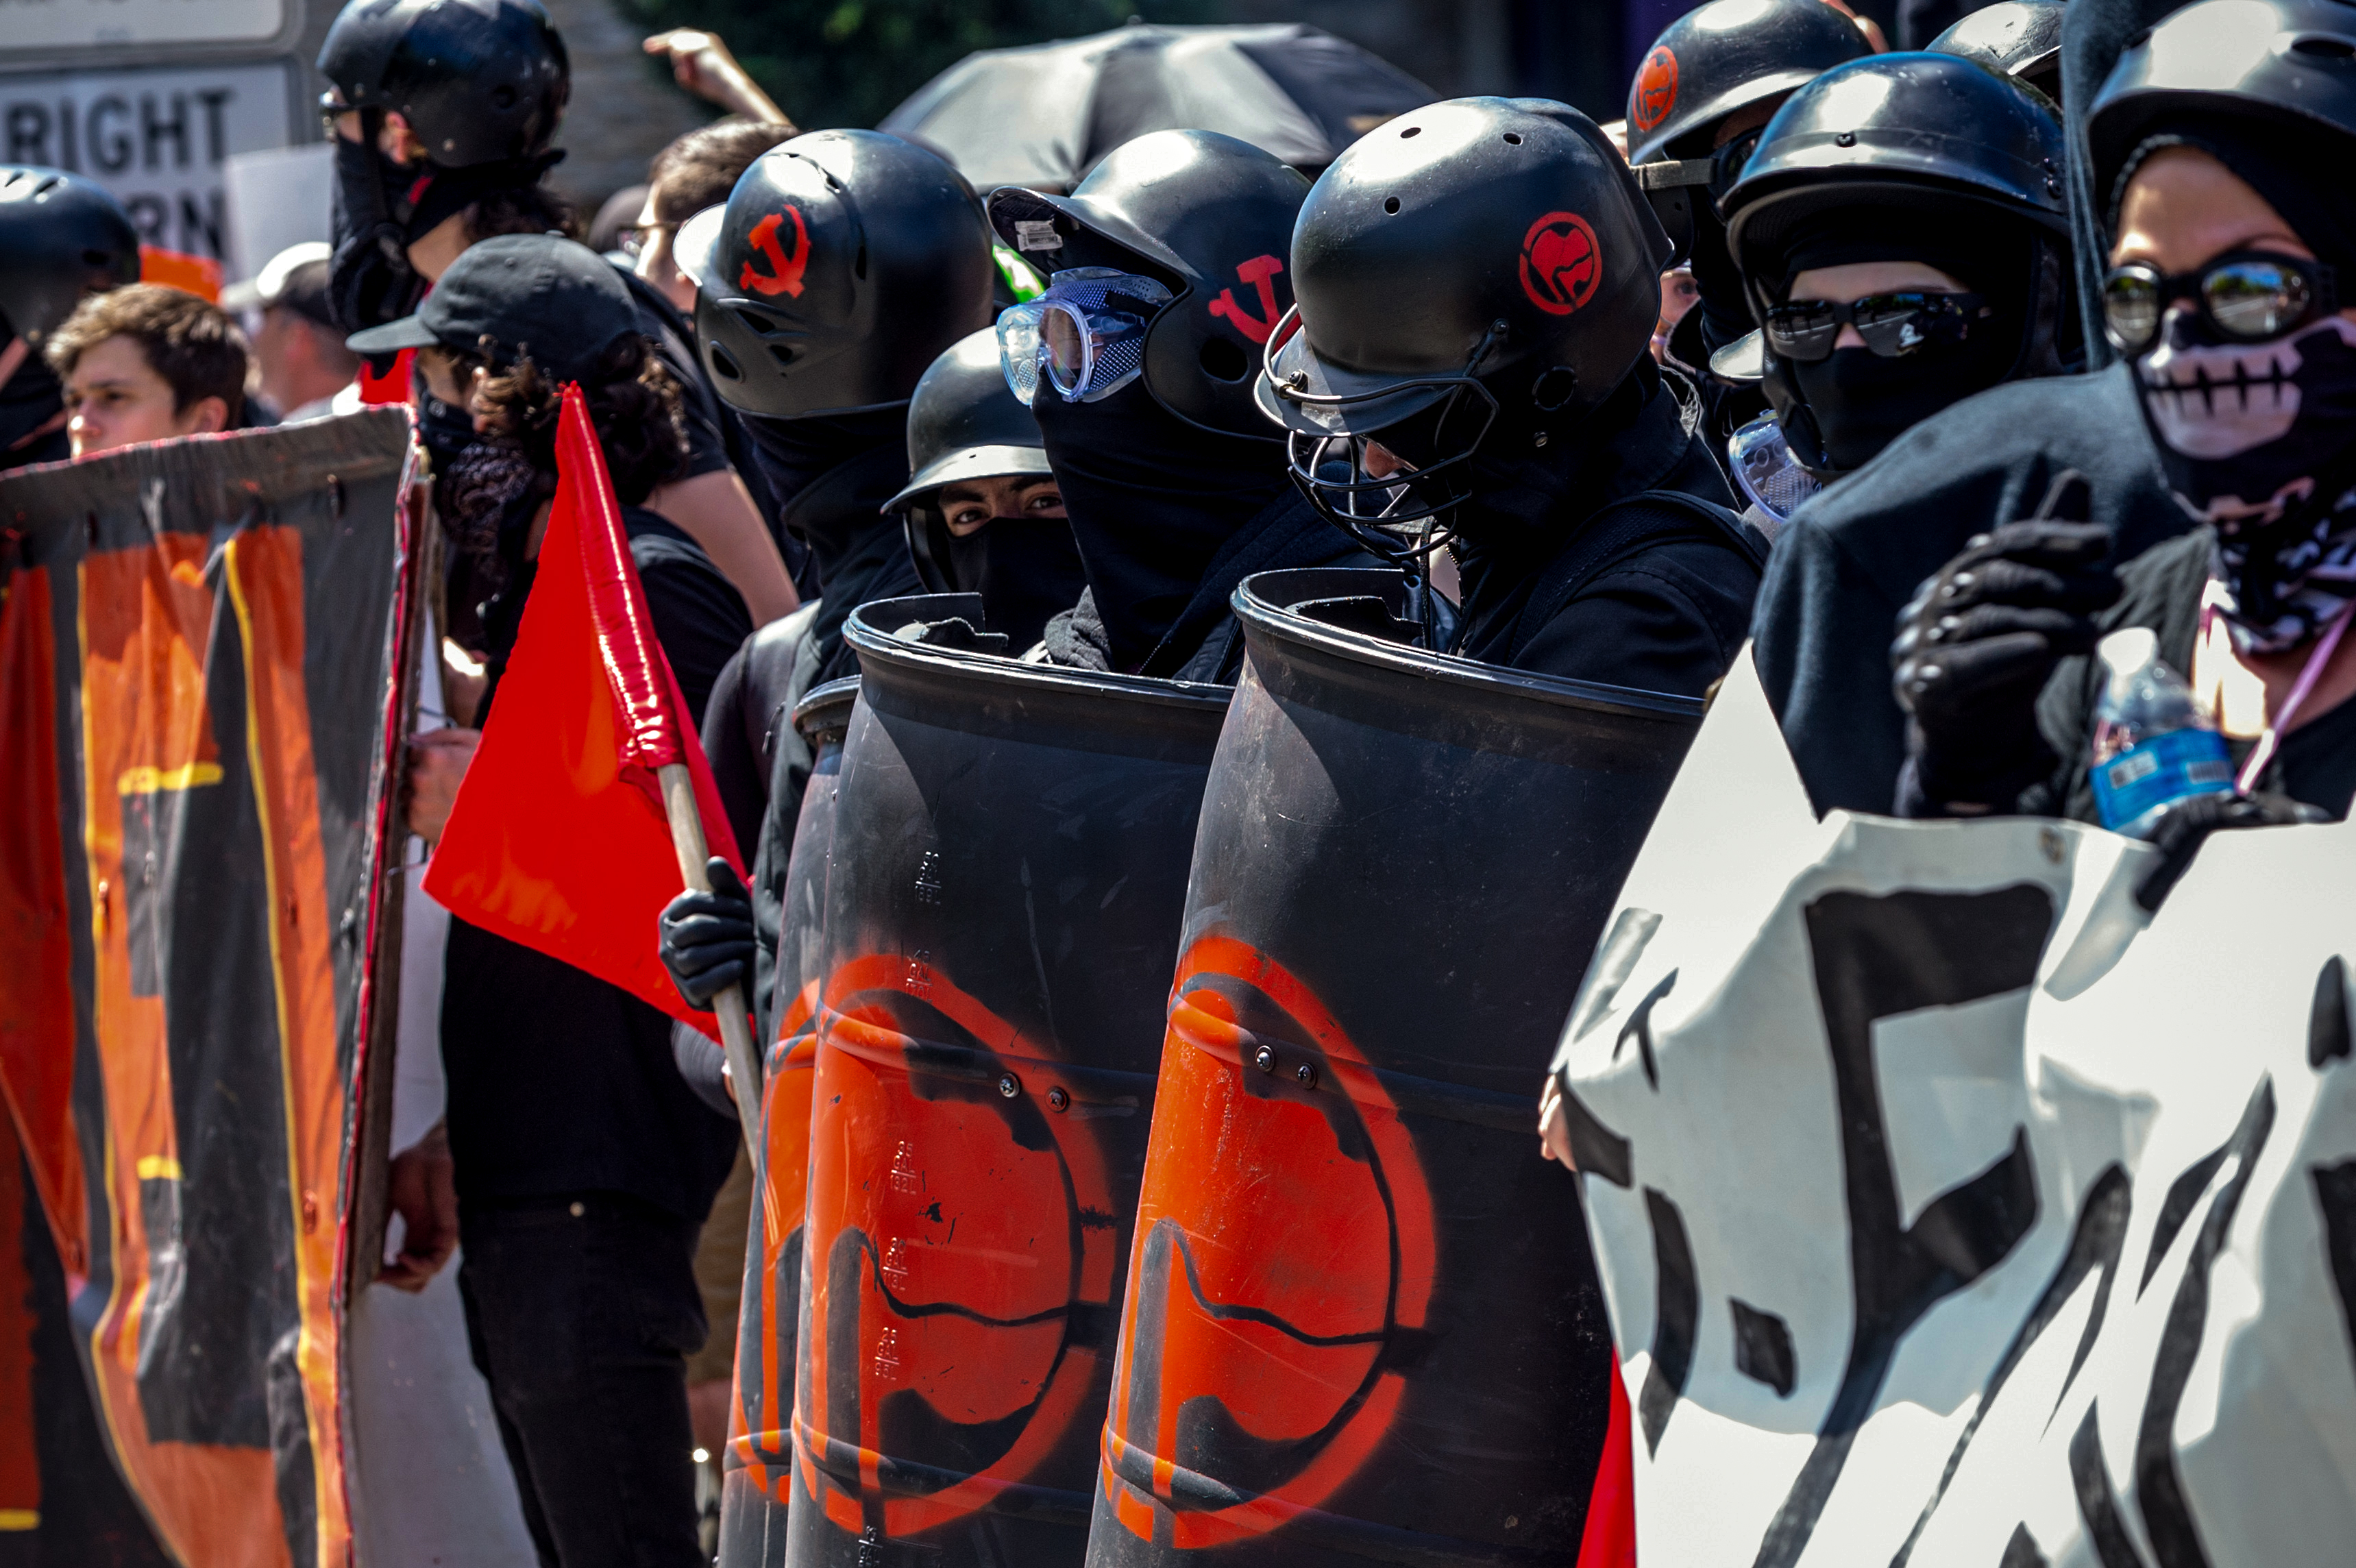 PORTLAND, OR - AUGUST 4: Members of the Antifa at the Patriot Prayer Rally in downtown Portland, OR, on August 4, 2018. (Photo by Diego Diaz/Icon Sportswire via Getty Images).